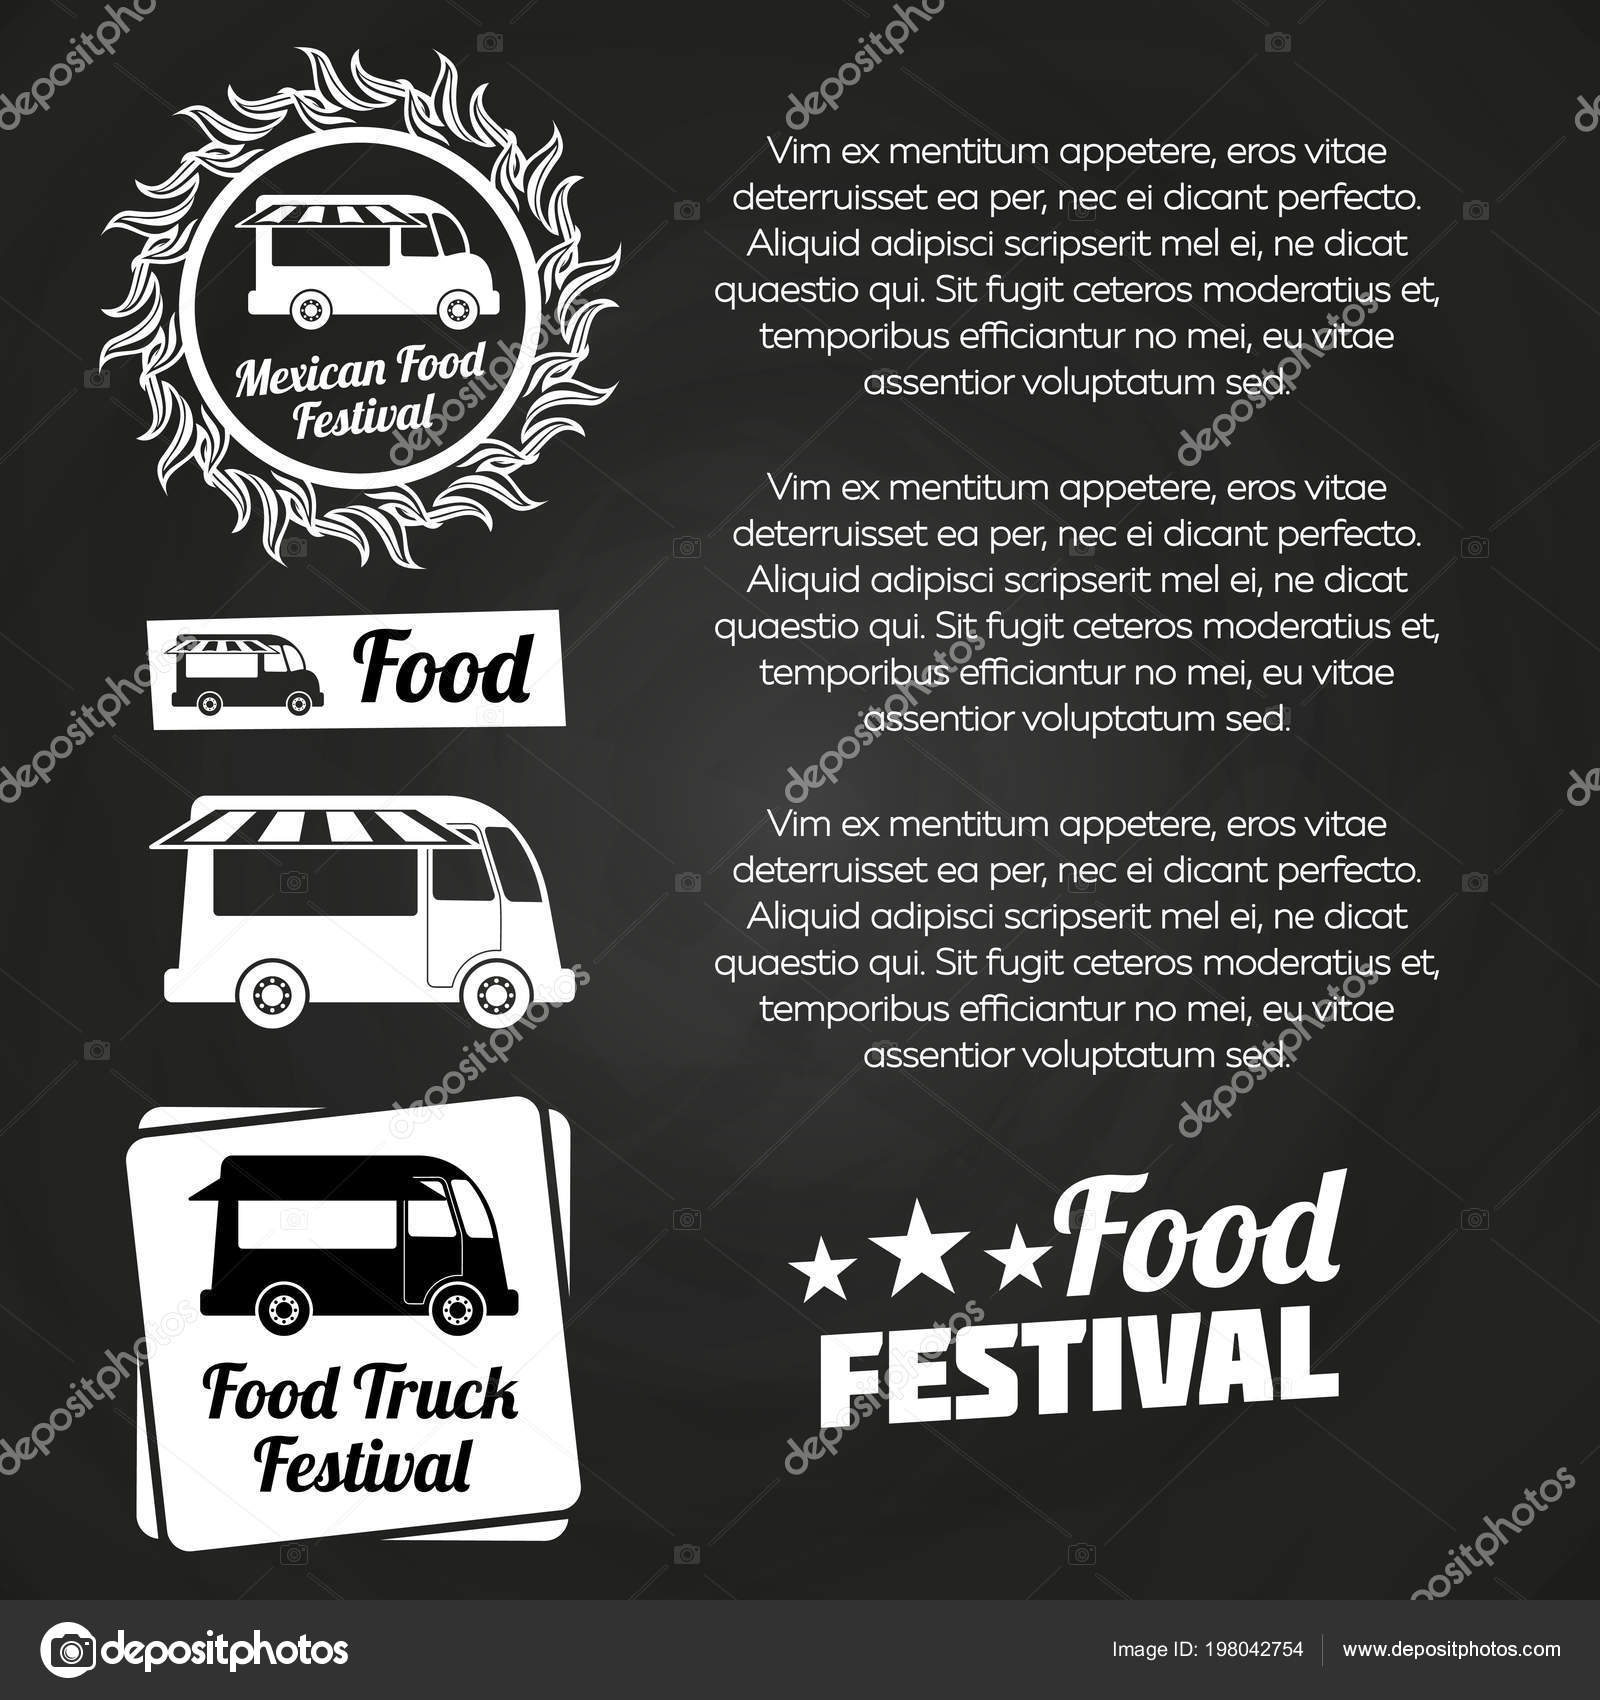 Chalkboard Food Festival Poster Design With Labels And Trucks Vector Illustration By MicroOne